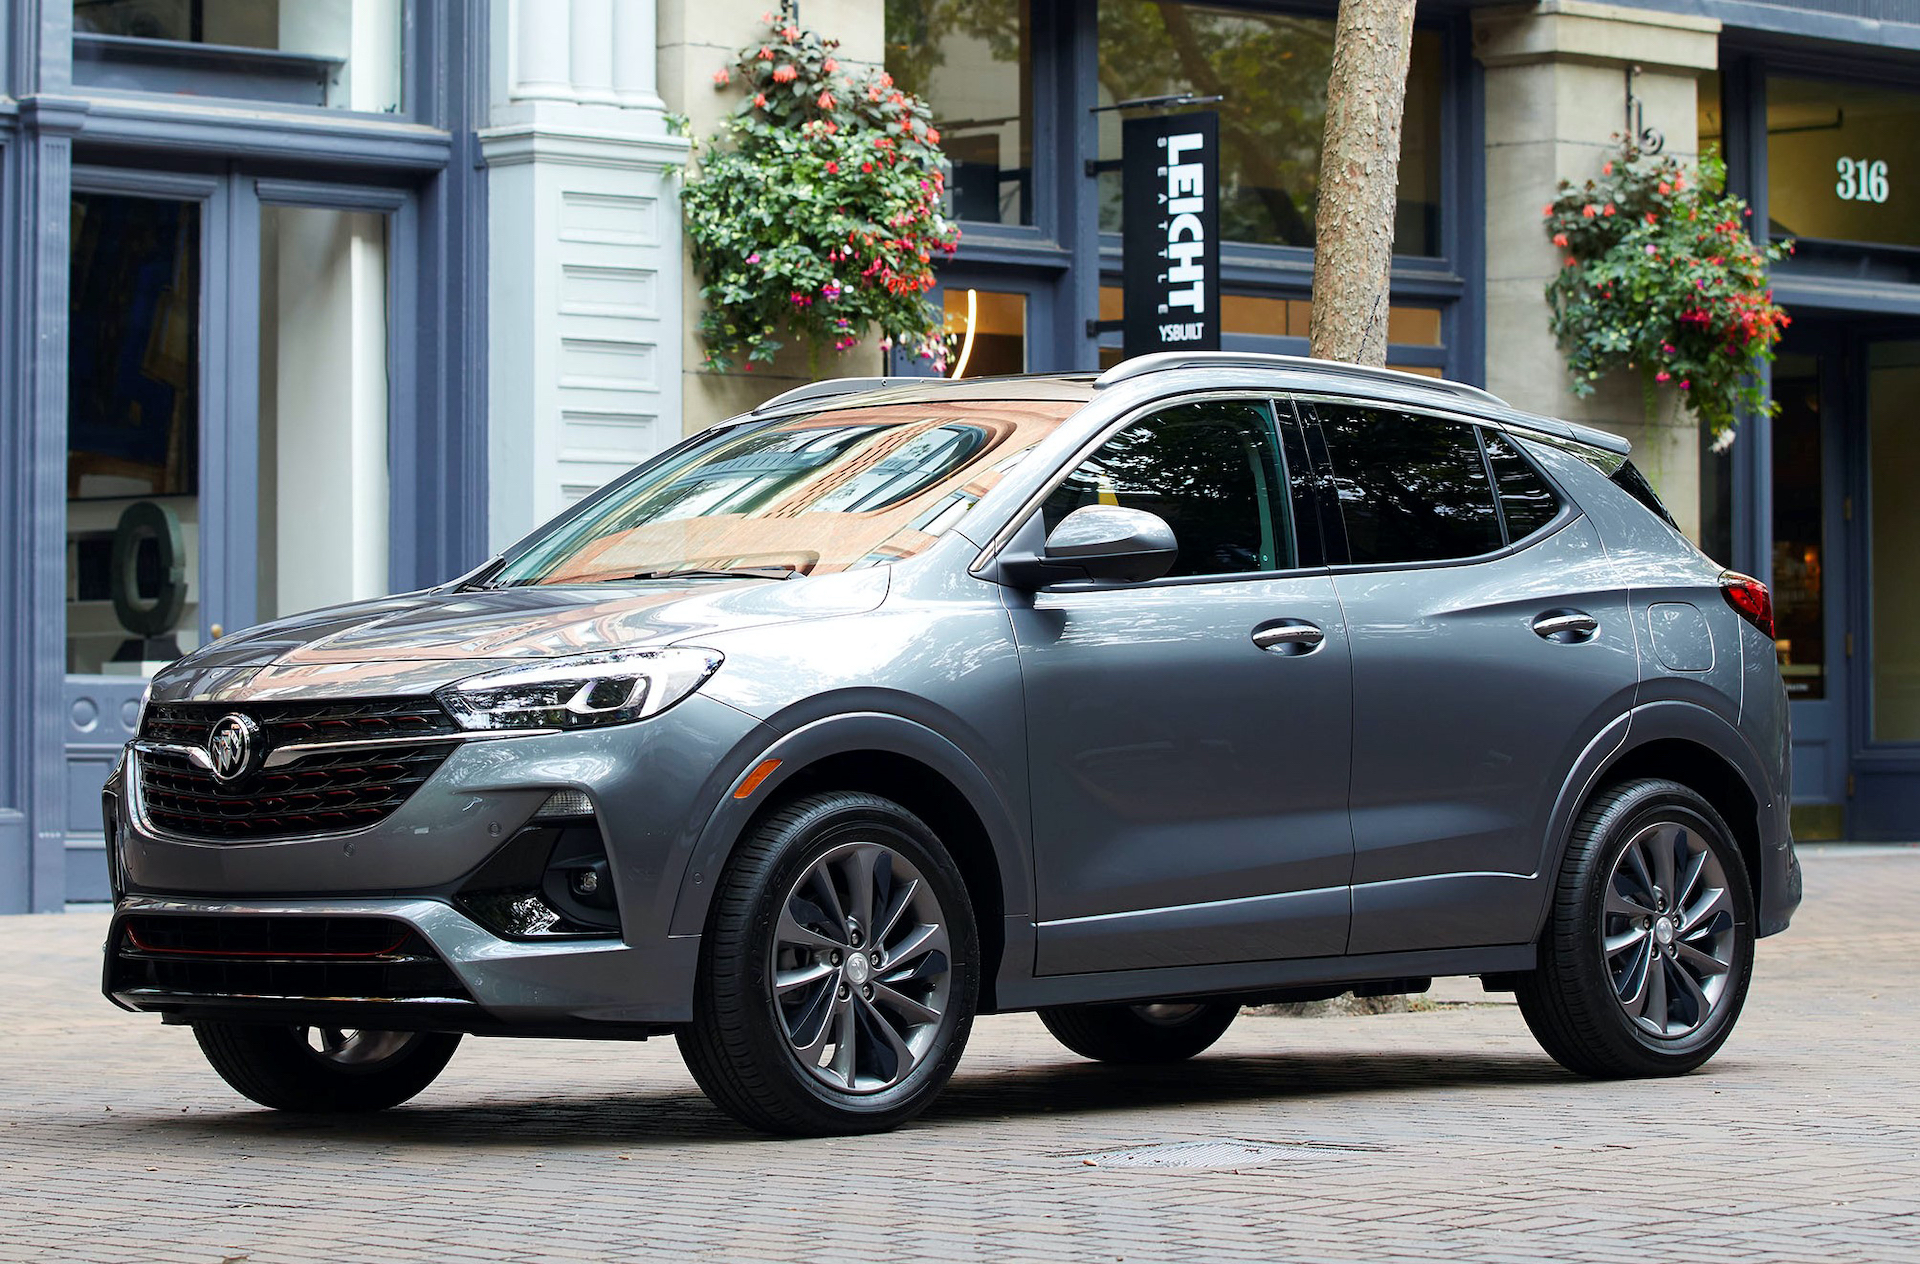 2021 Buick Encore Review, Ratings, Specs, Prices, And Photos New 2021 Buick Encore Cost, Build And Price, Engine